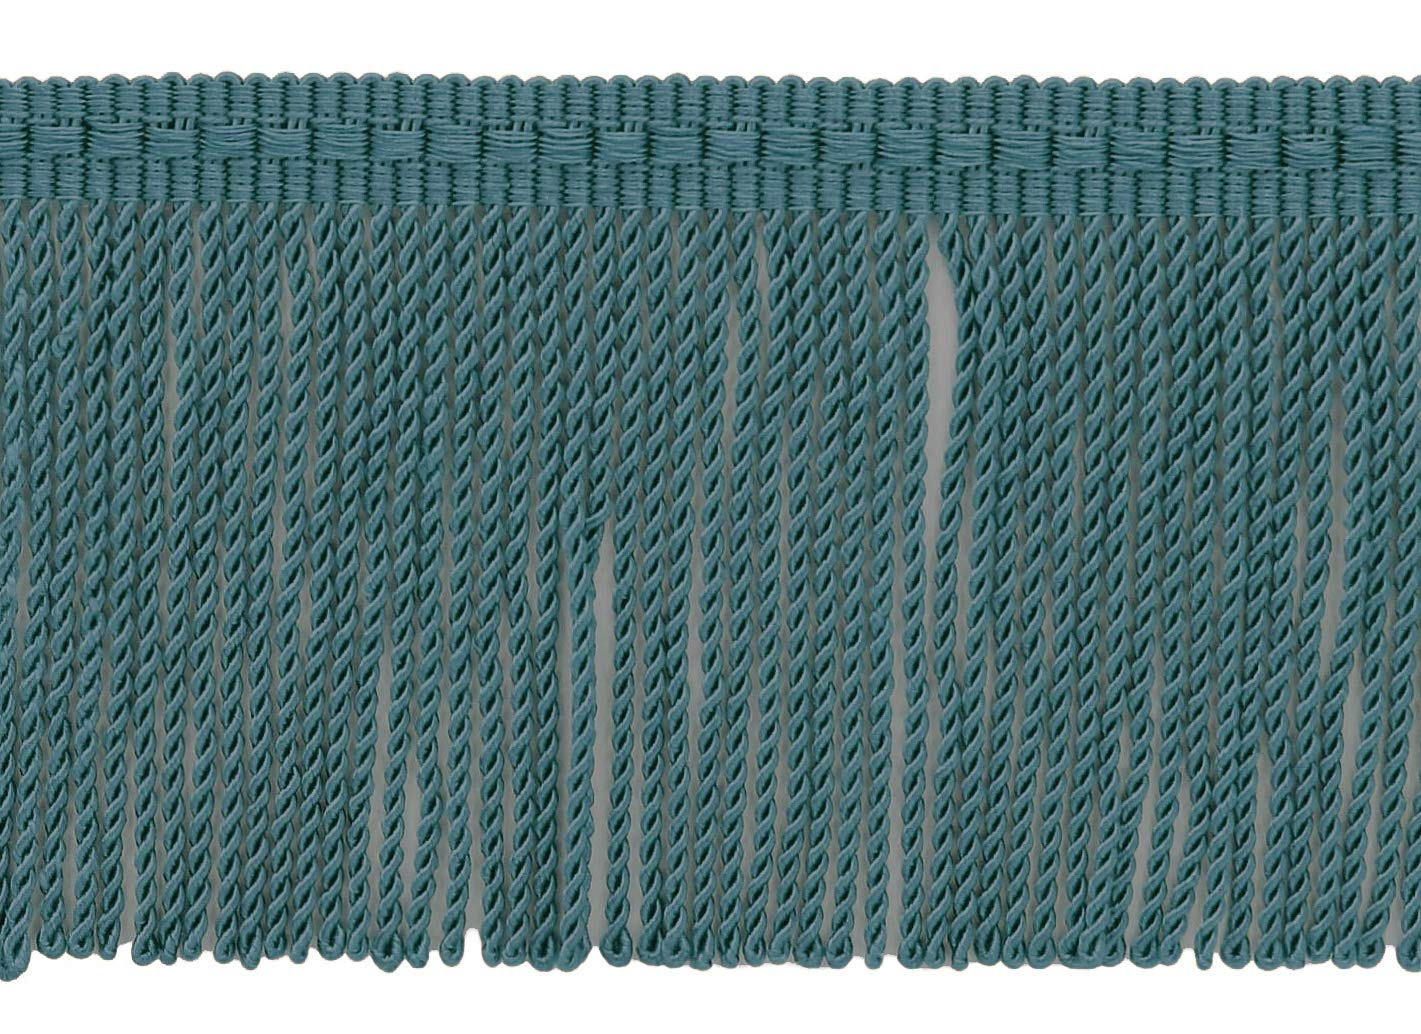 D/ÉCOPRO 3 Inch Long Teal Blue Thin Bullion Fringe Trim|Style# BFTC3|Color 9620|Sold by The Yard Light Peacock Blue